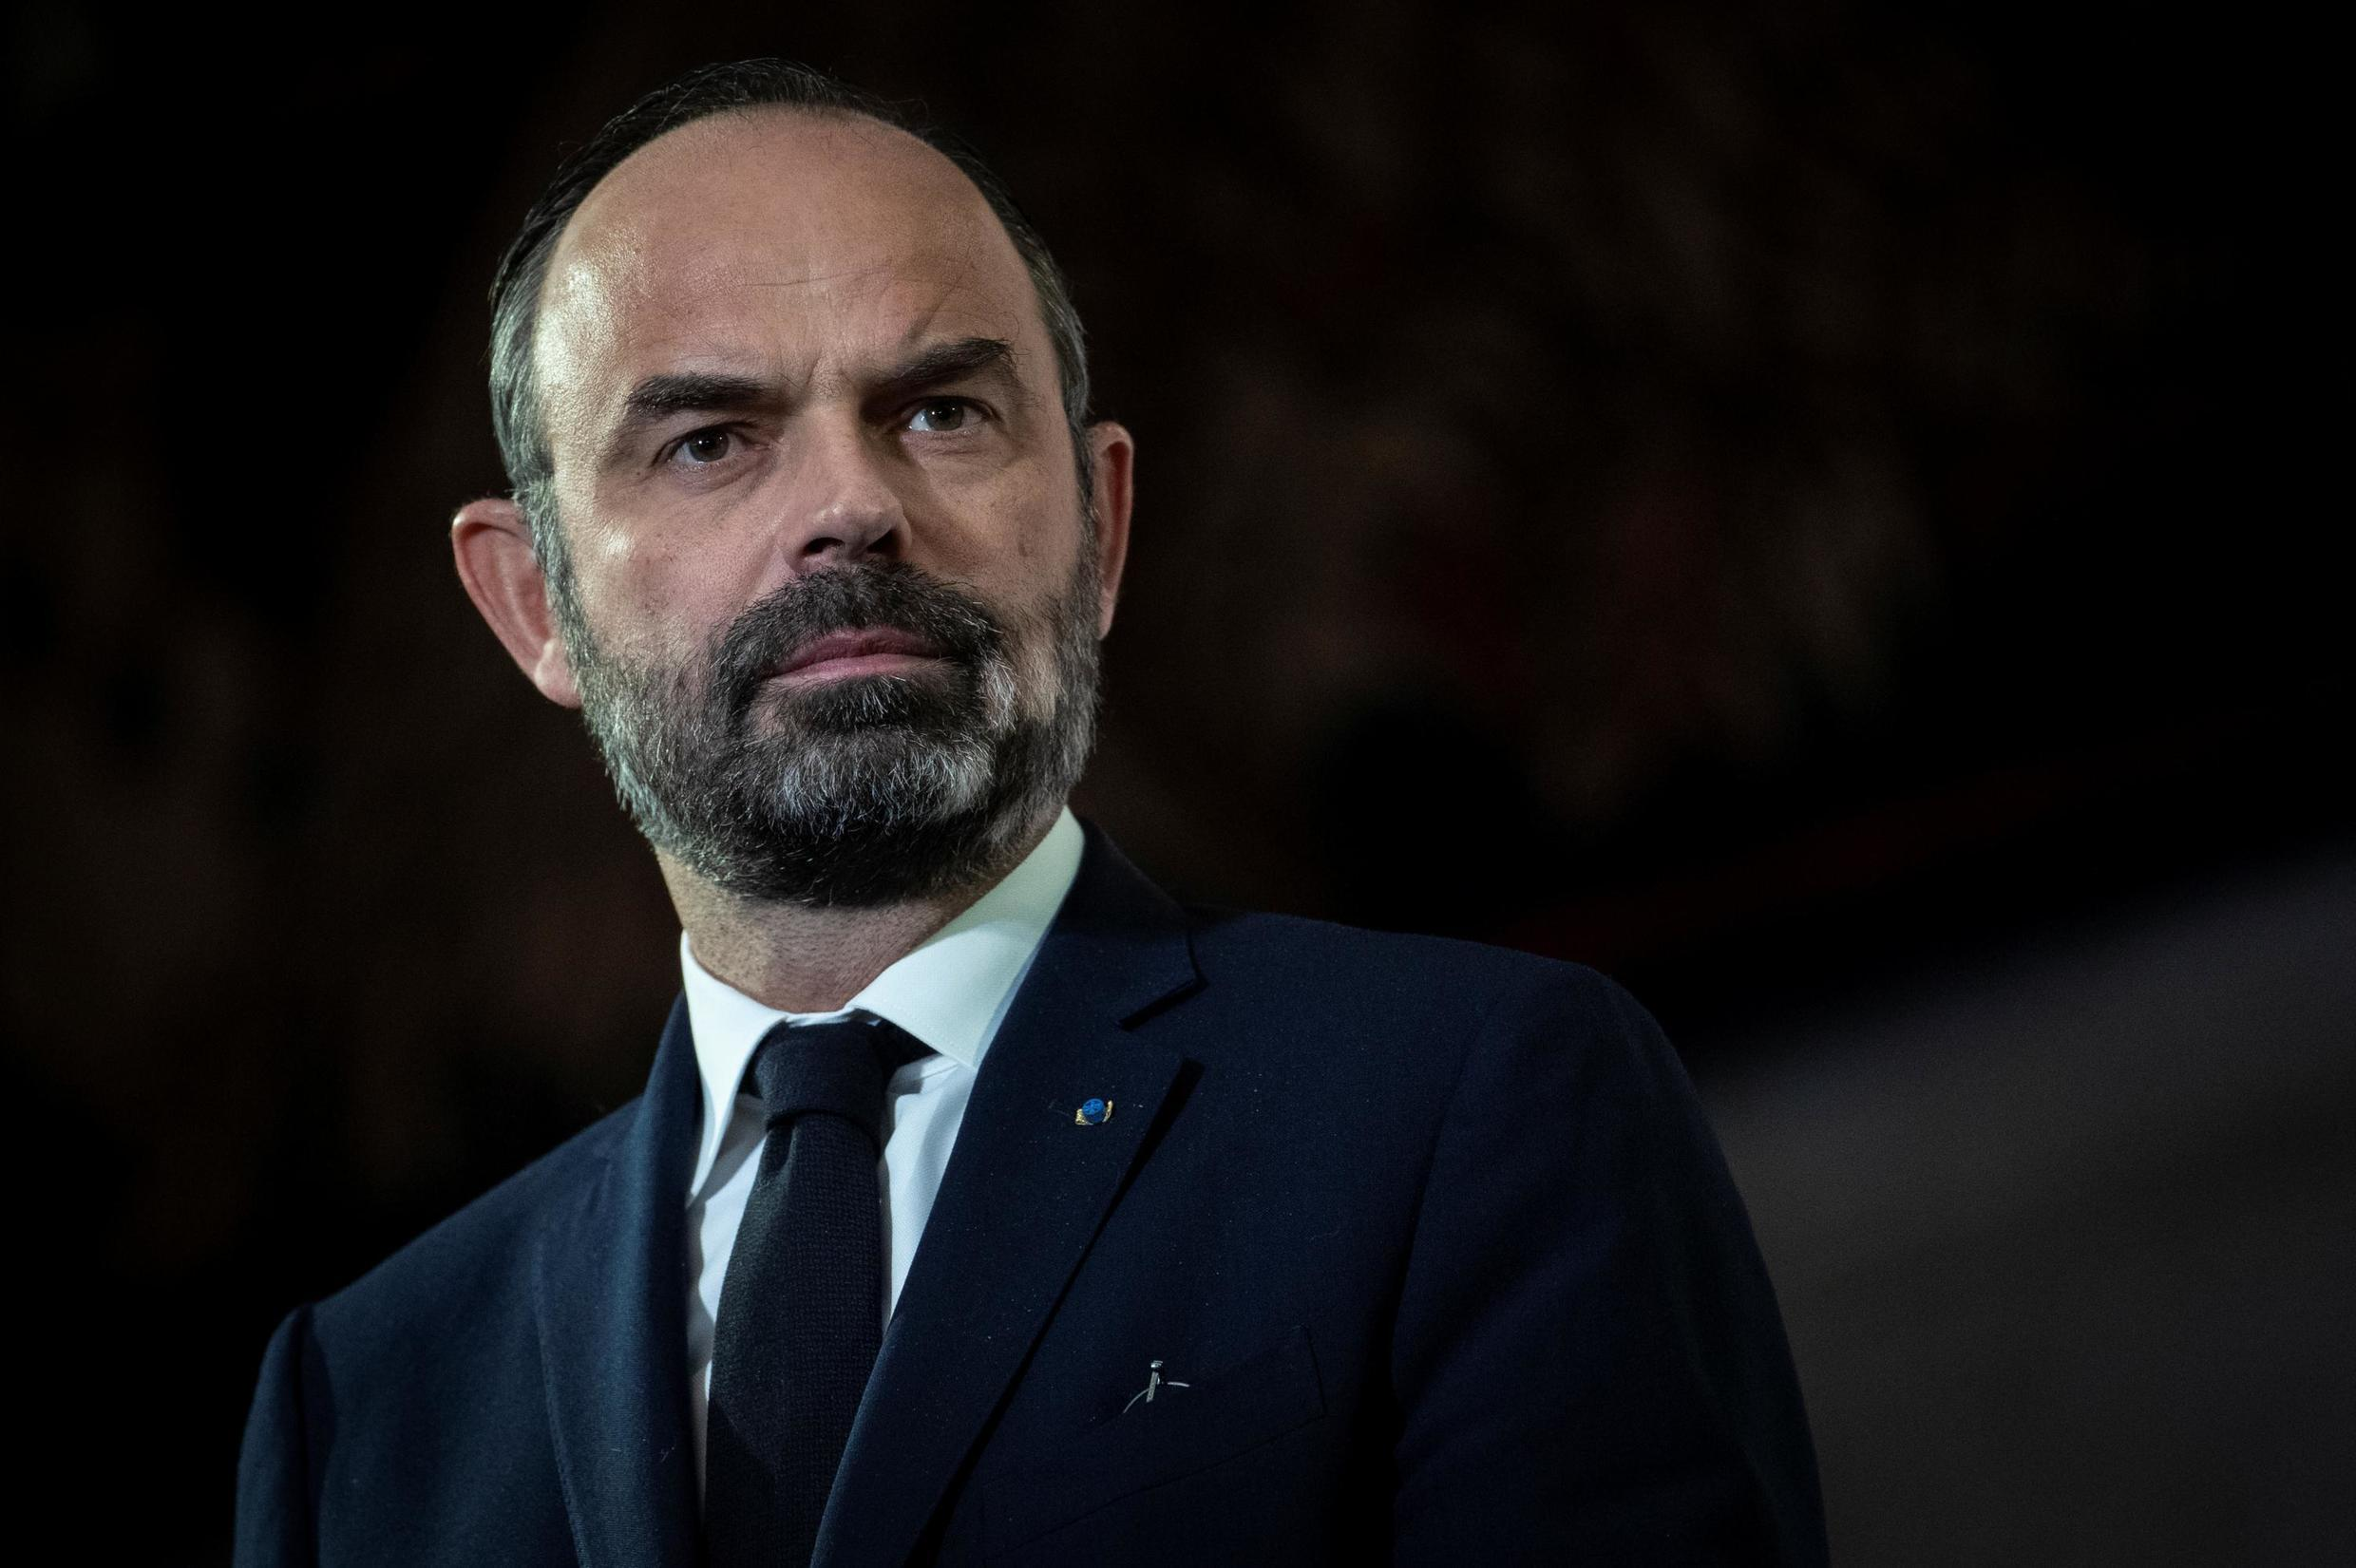 French prime minister Edouard Philippe says the government will carry on with its plans to reform the pensions system.